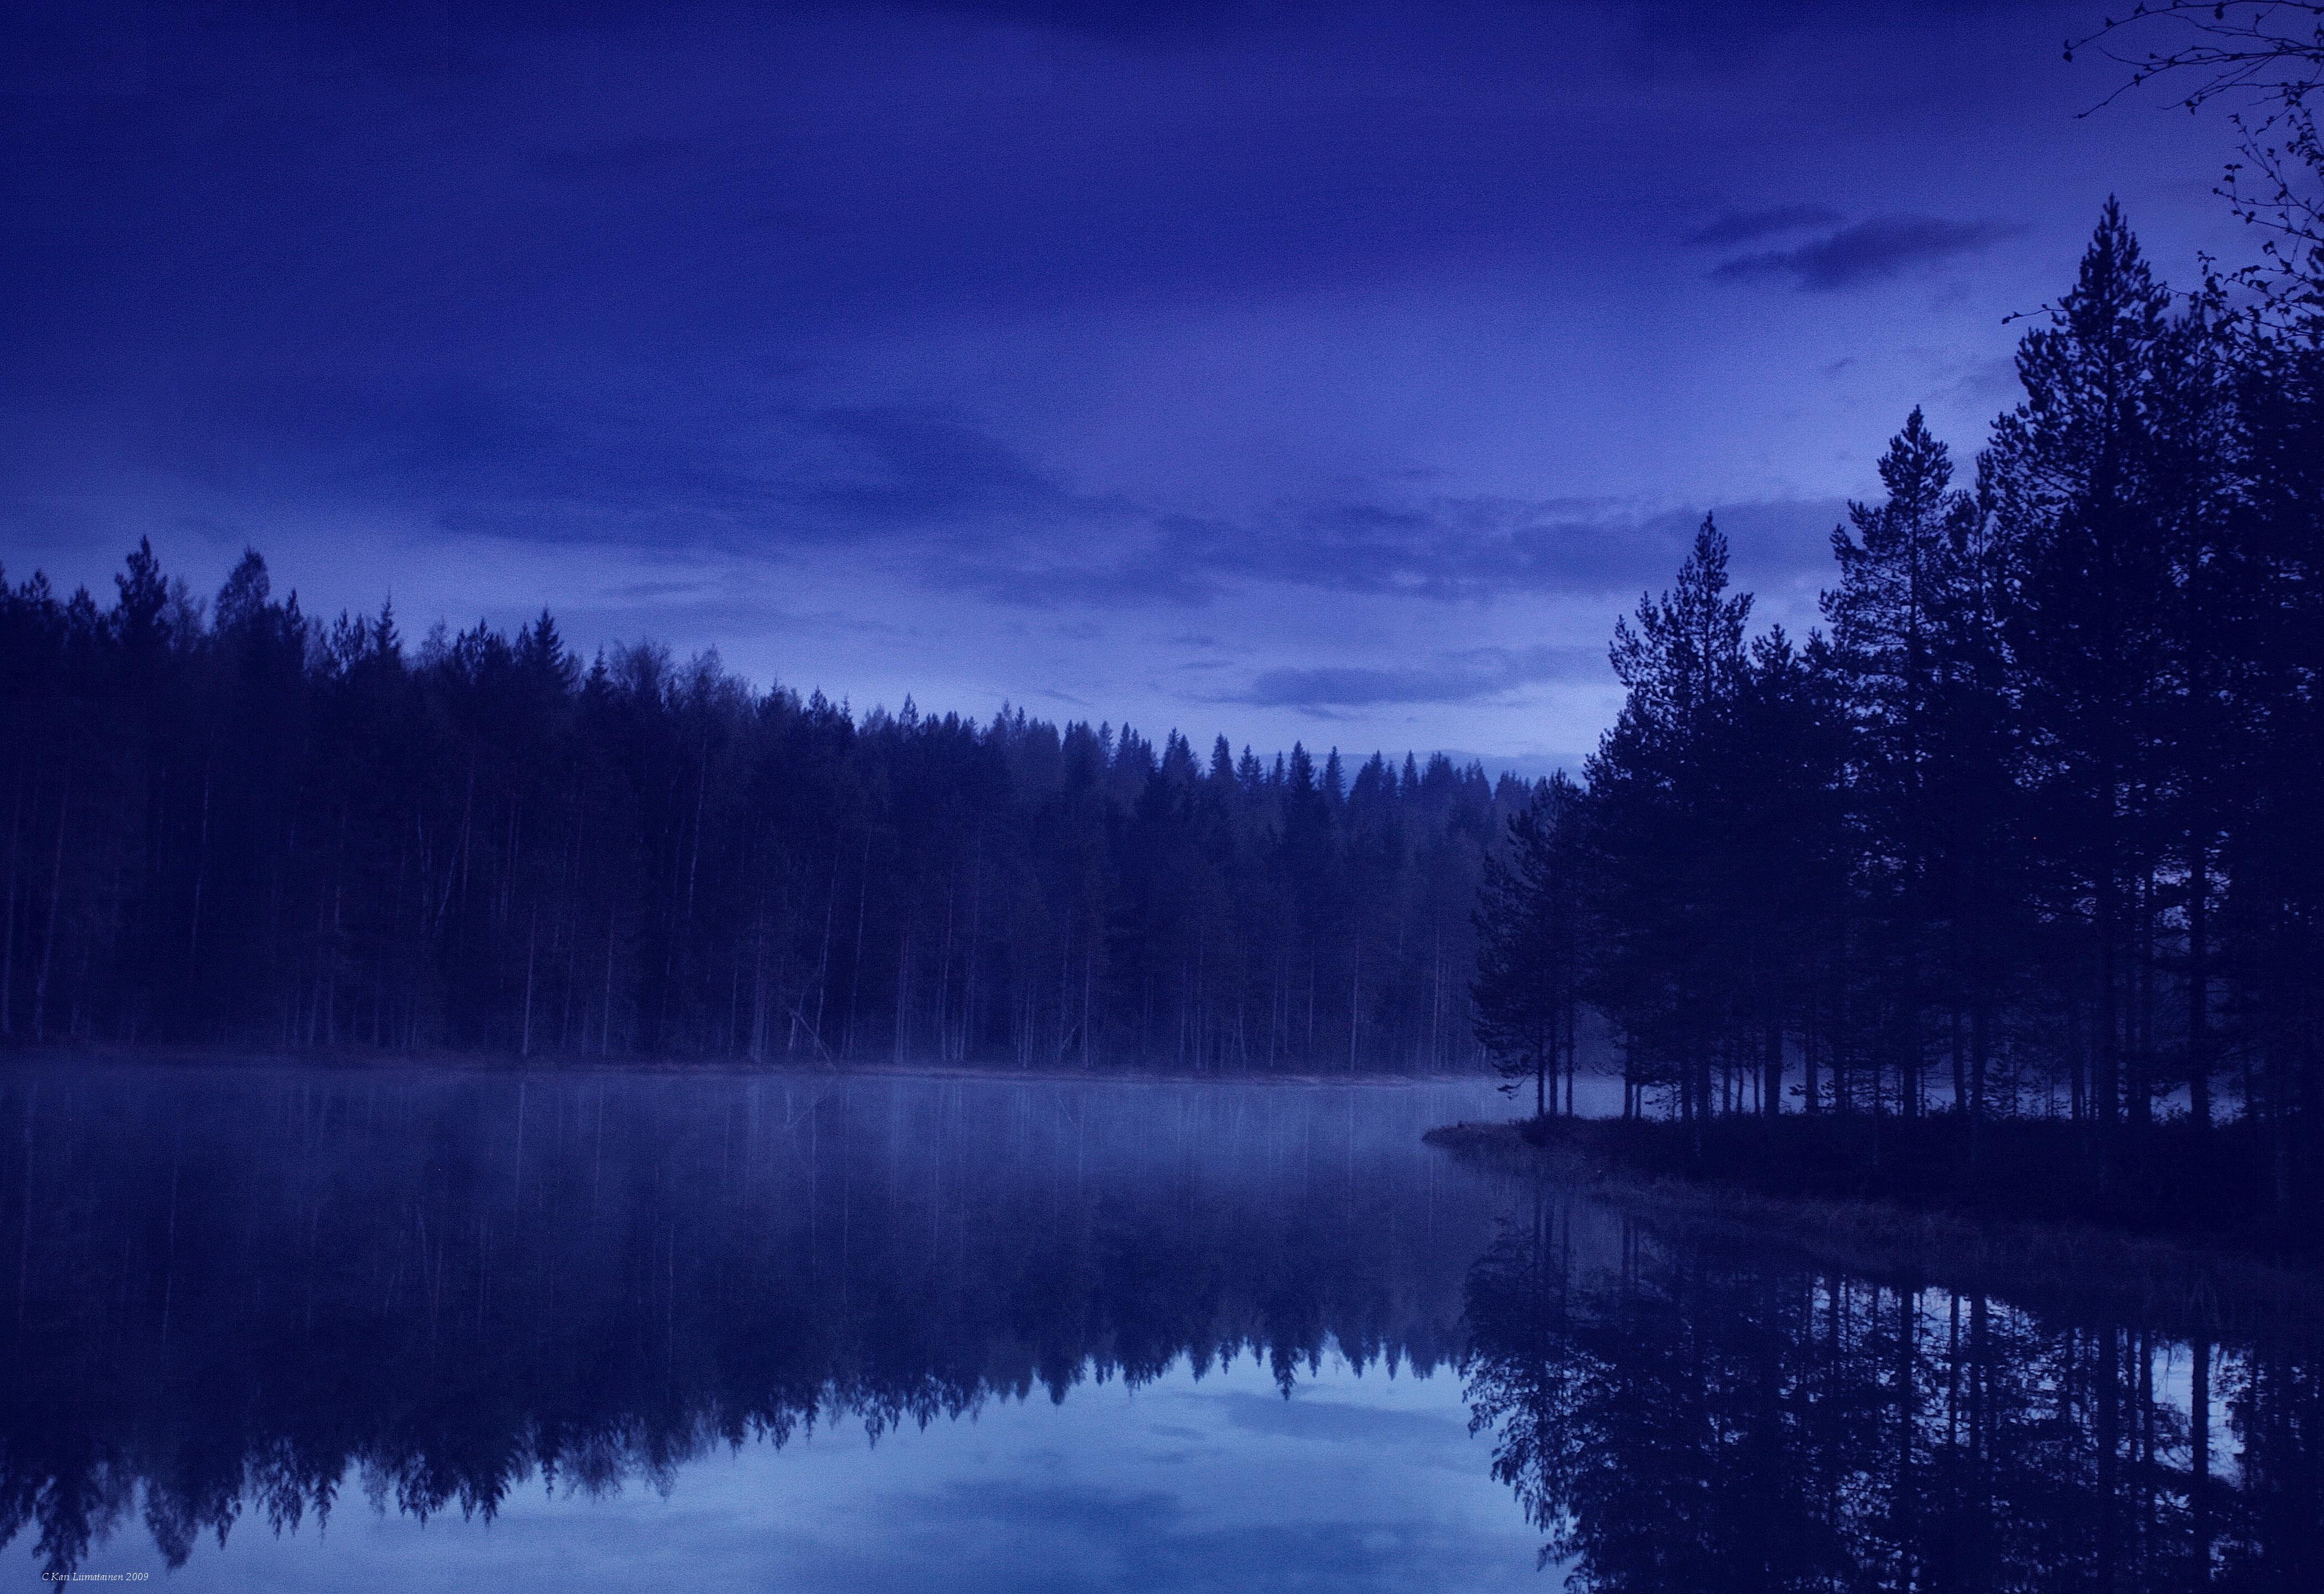 Forest Lake At Night Desktop Wallpapers And Photos Free Downloads Landscape Scenery Night Forest Scenery